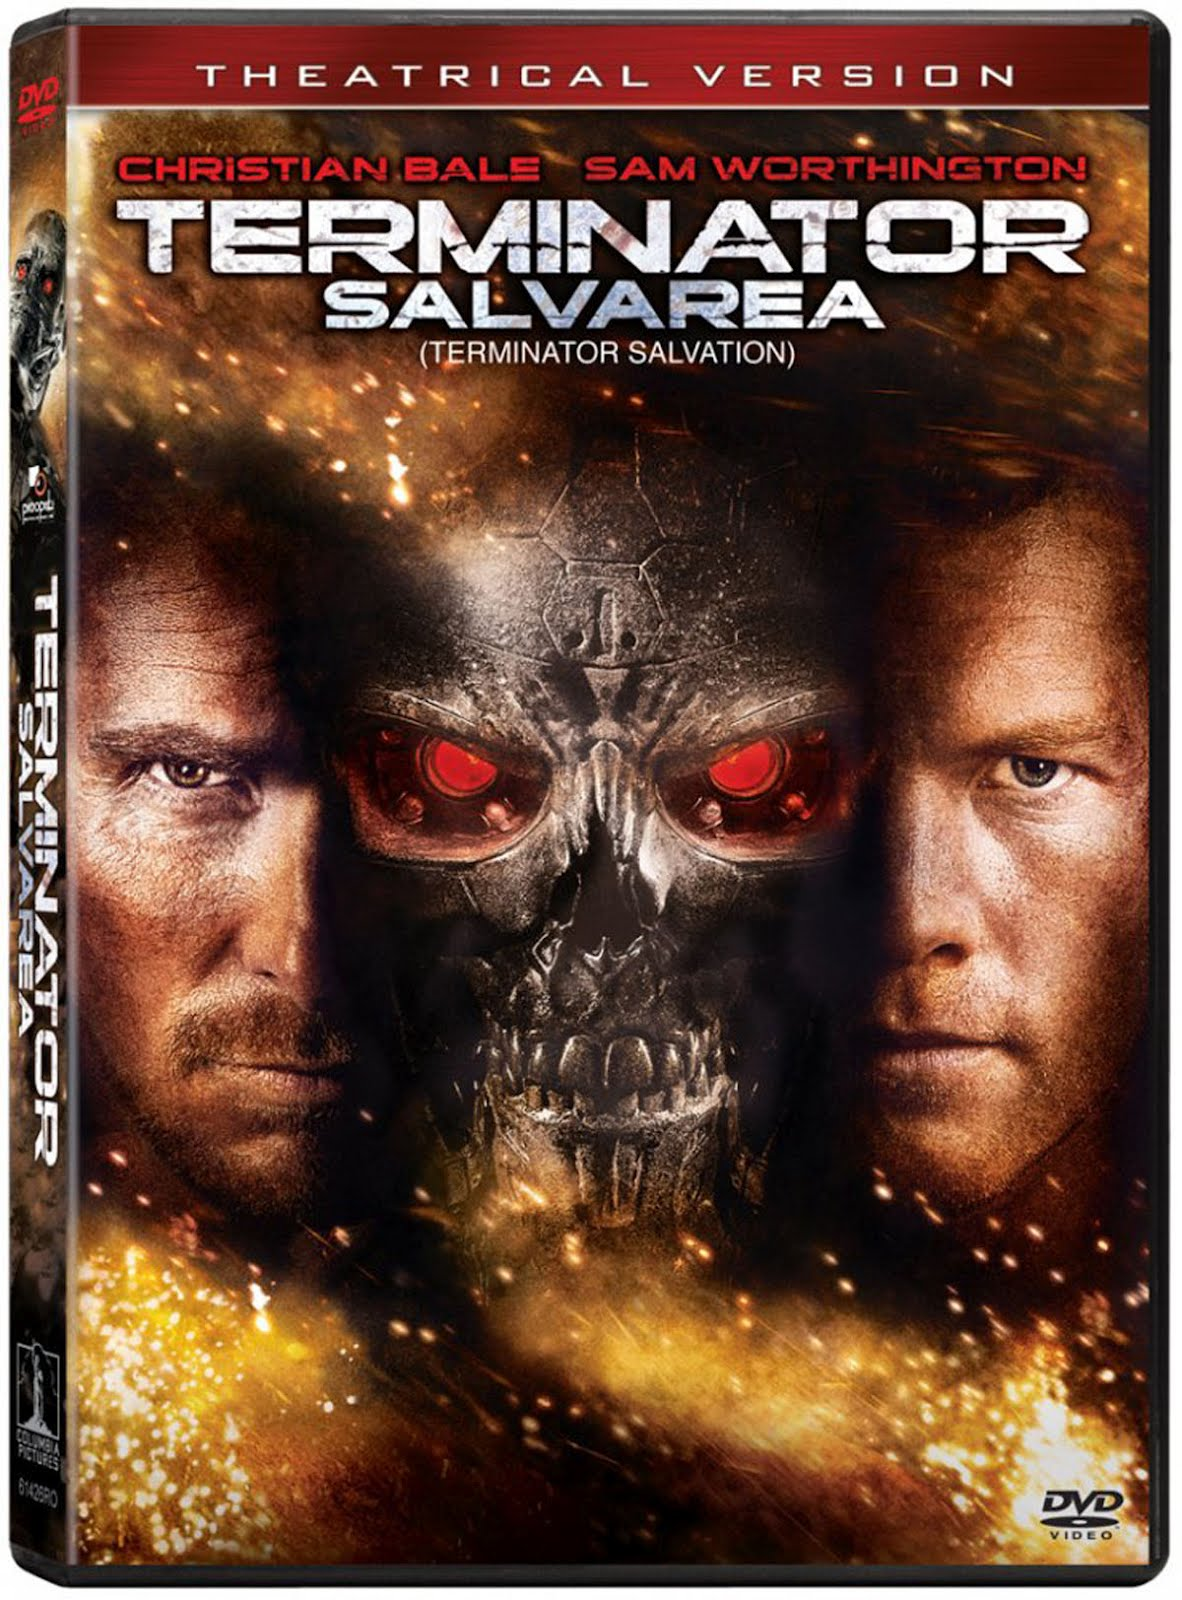 Terminator Salvation Movie DVD Case